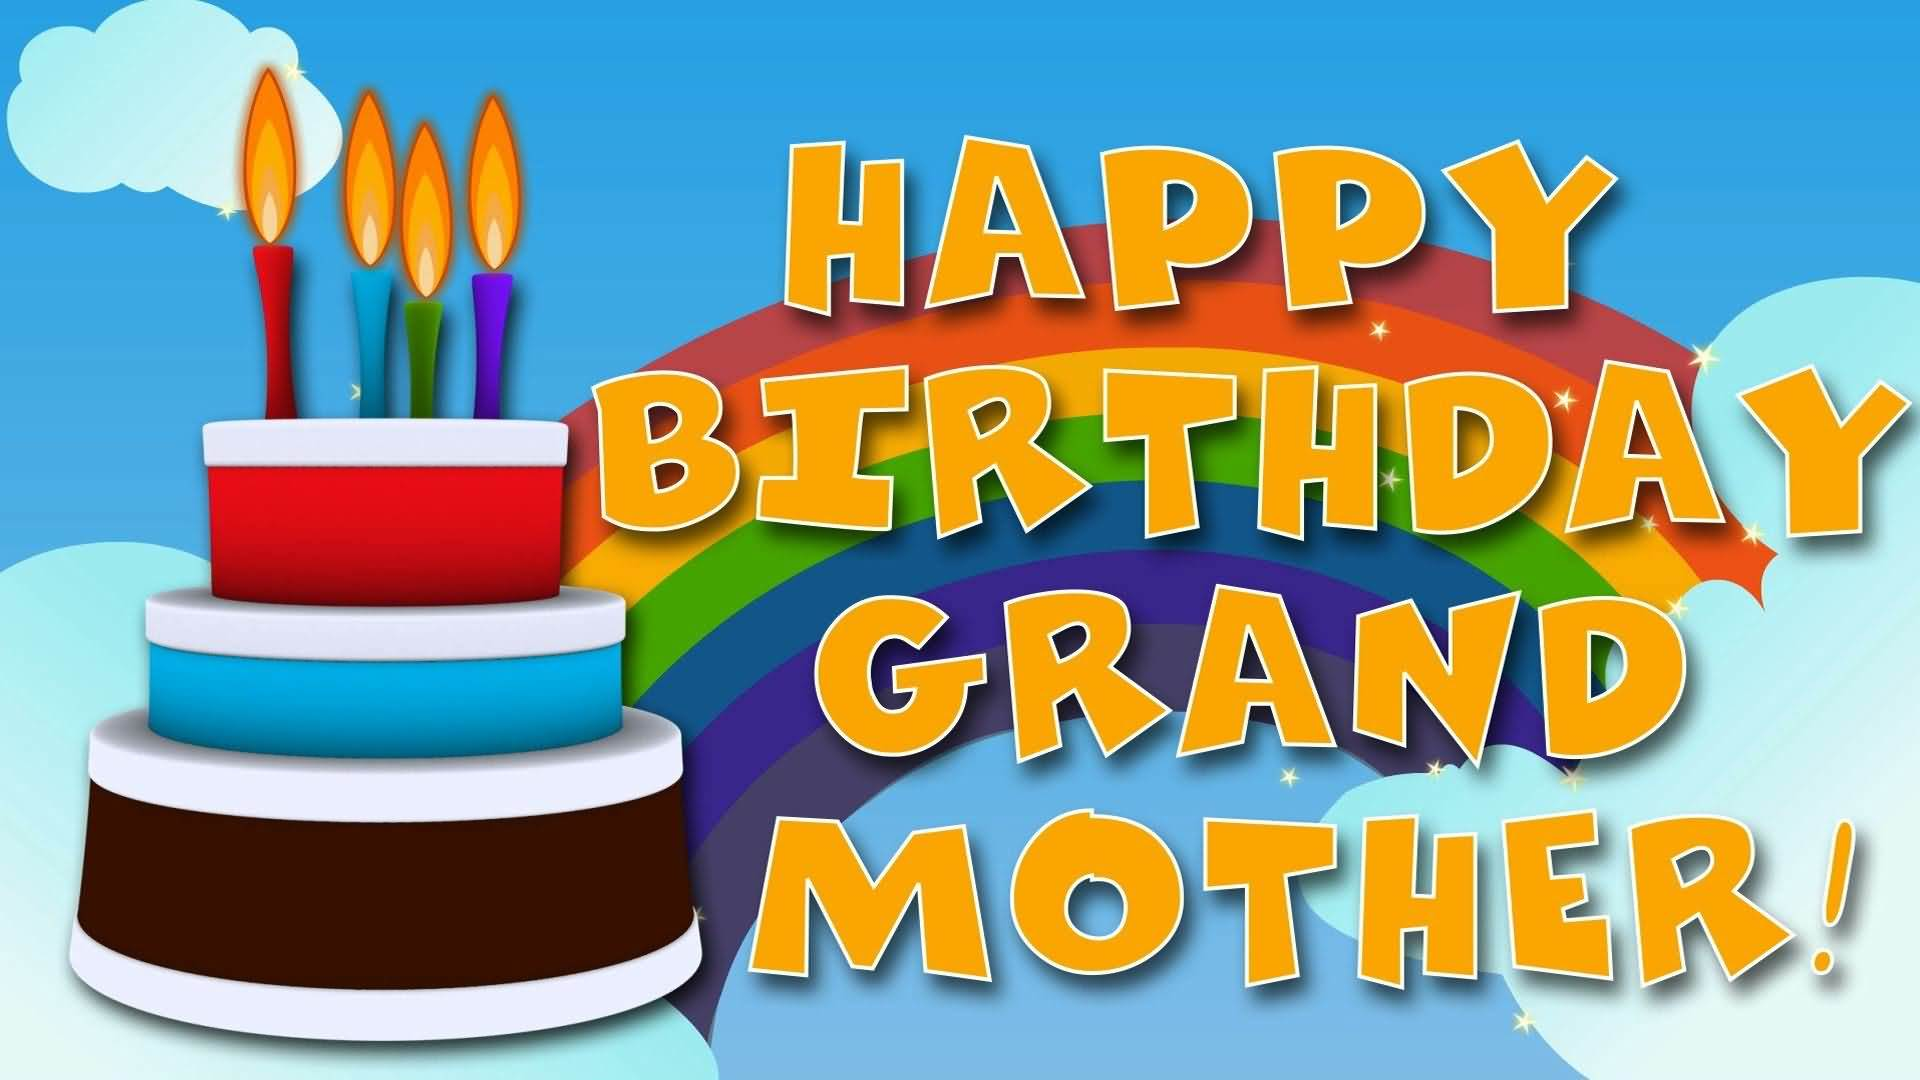 Superb Birthday Wishes E-Cards